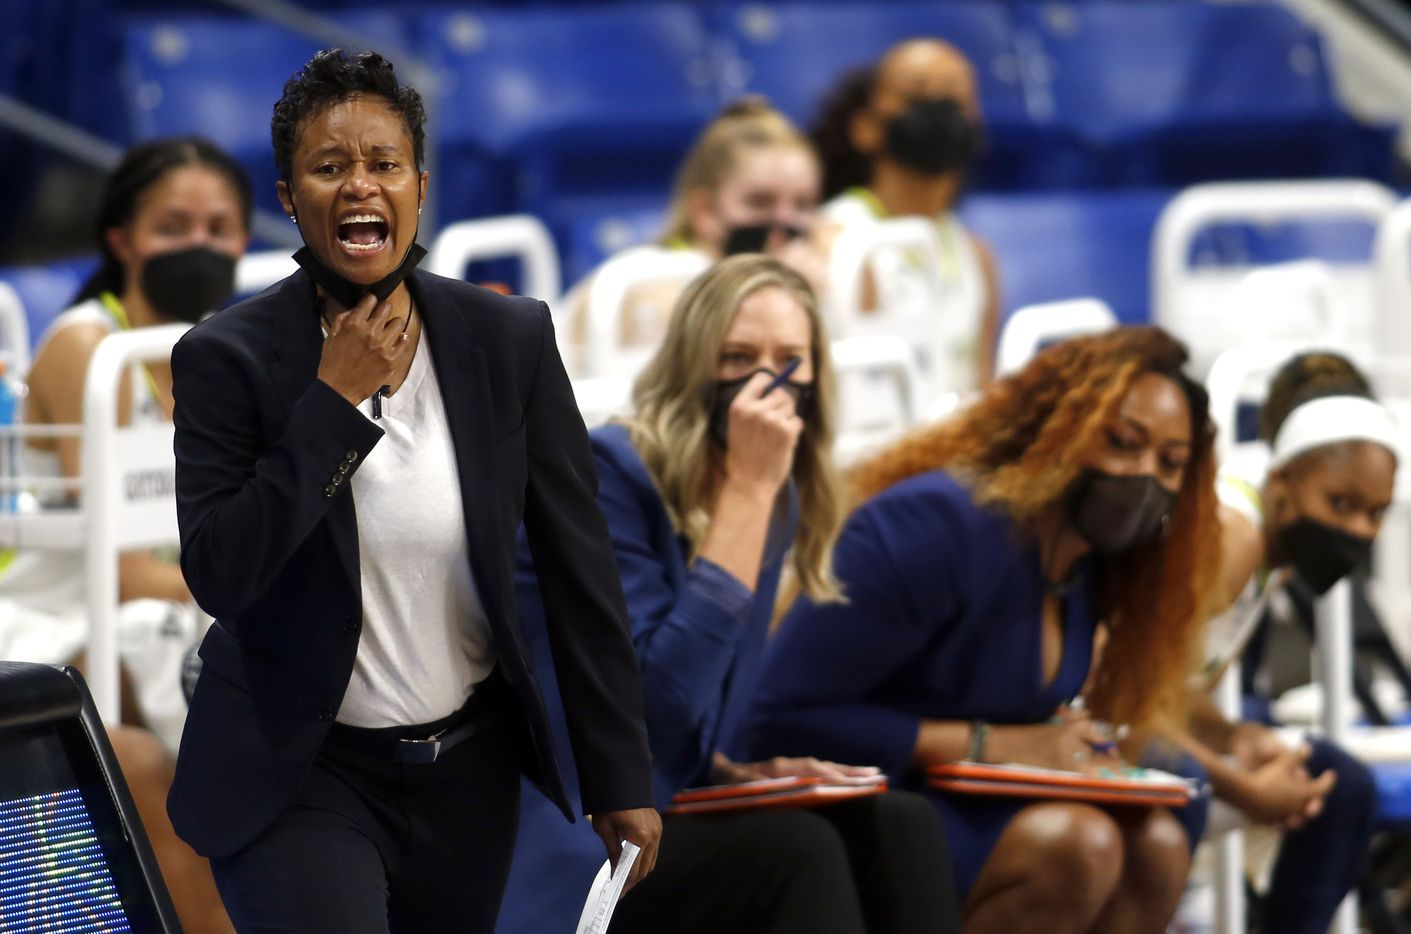 Dallas Wings head coach Vickie Johnson directs her players from the team bench area during second half action against Seattle. The Wings hosted the Storm for their WNBA 2021season home opener at UTA's College Park Center in Arlington on May 22, 2021. (Steve Hamm/ Special Contributor)